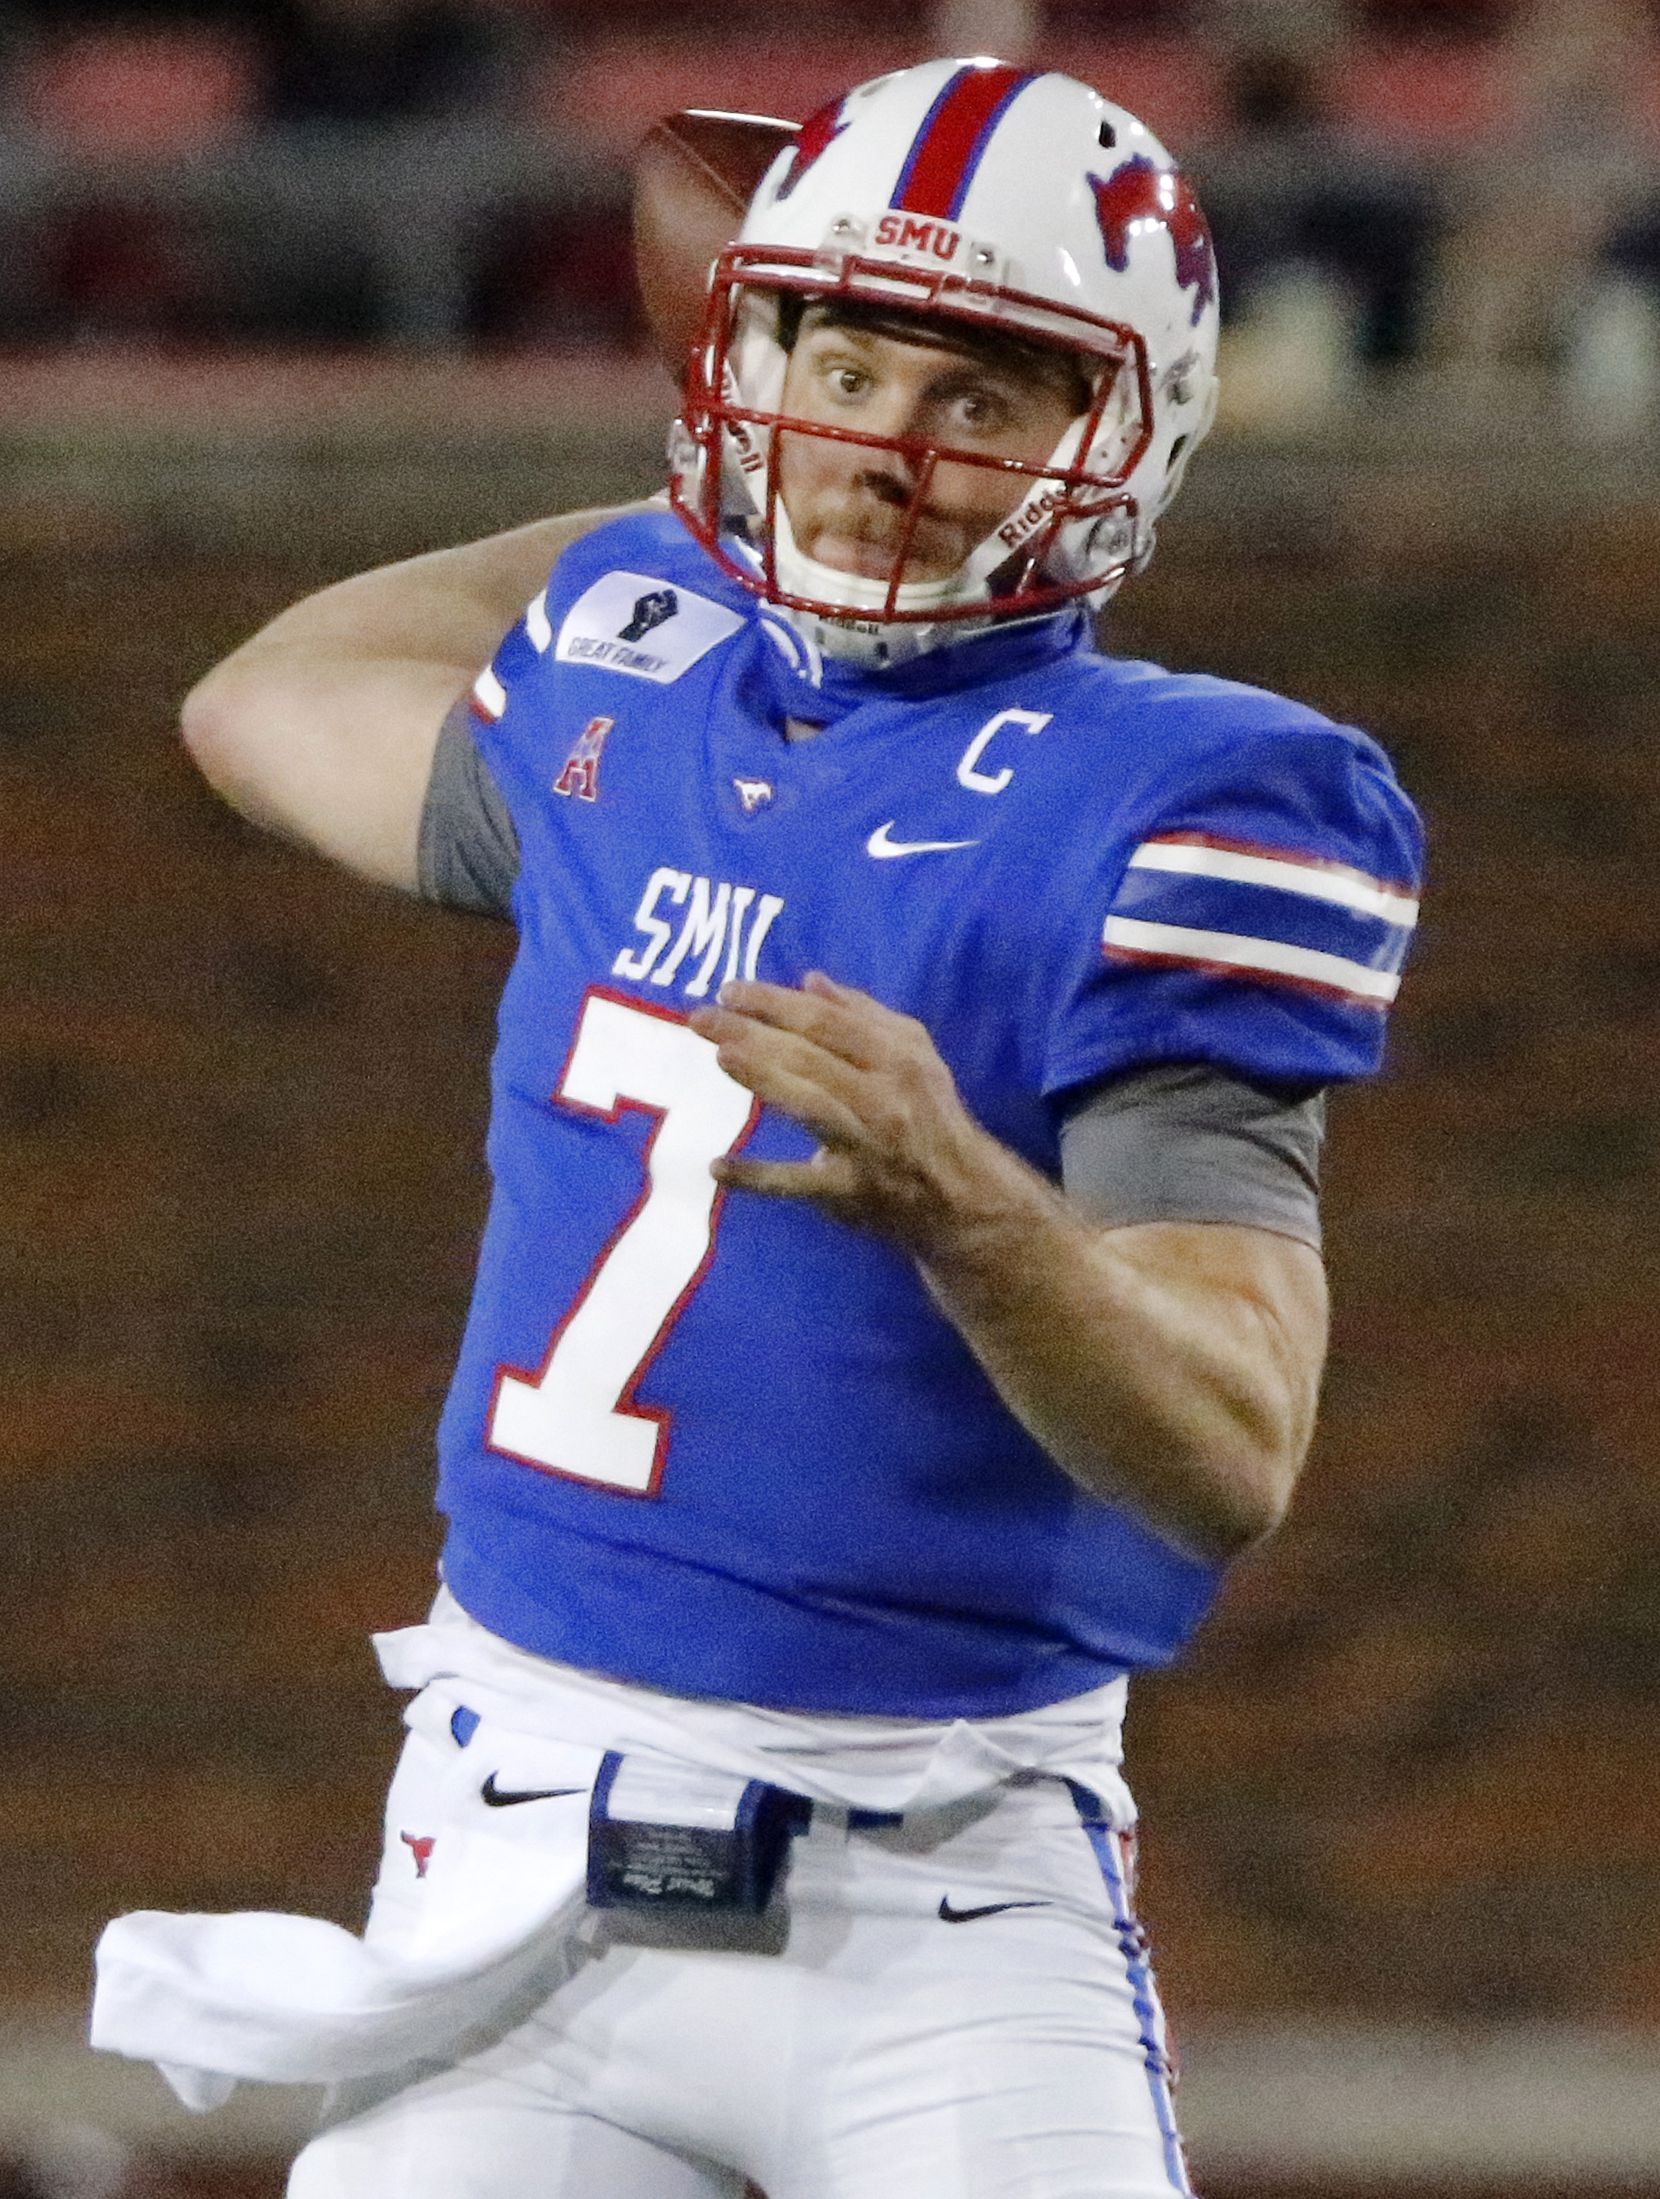 Southern Methodist Mustangs quarterback Shane Buechele (7) throws a pass during the first half as SMU hosted Cincinati University in an AAC football game at Ford Stadium in Dallas on Saturday night, October 24, 2020. (Stewart F. House/Special Contributor)